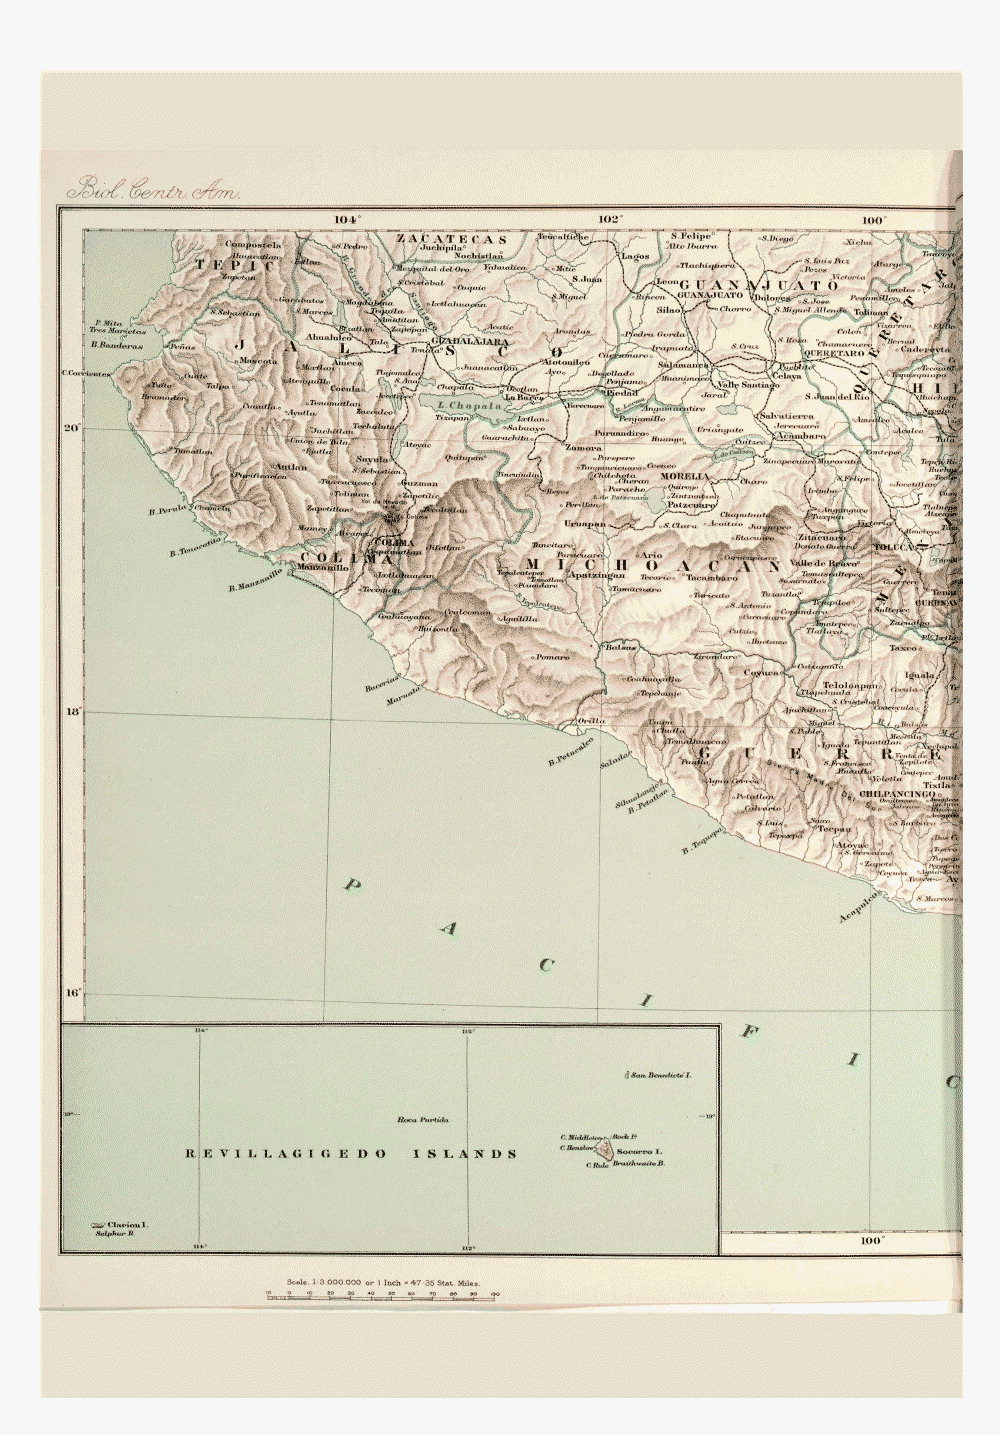 Maps of Central America,  Image number:bca_01_00_00_190